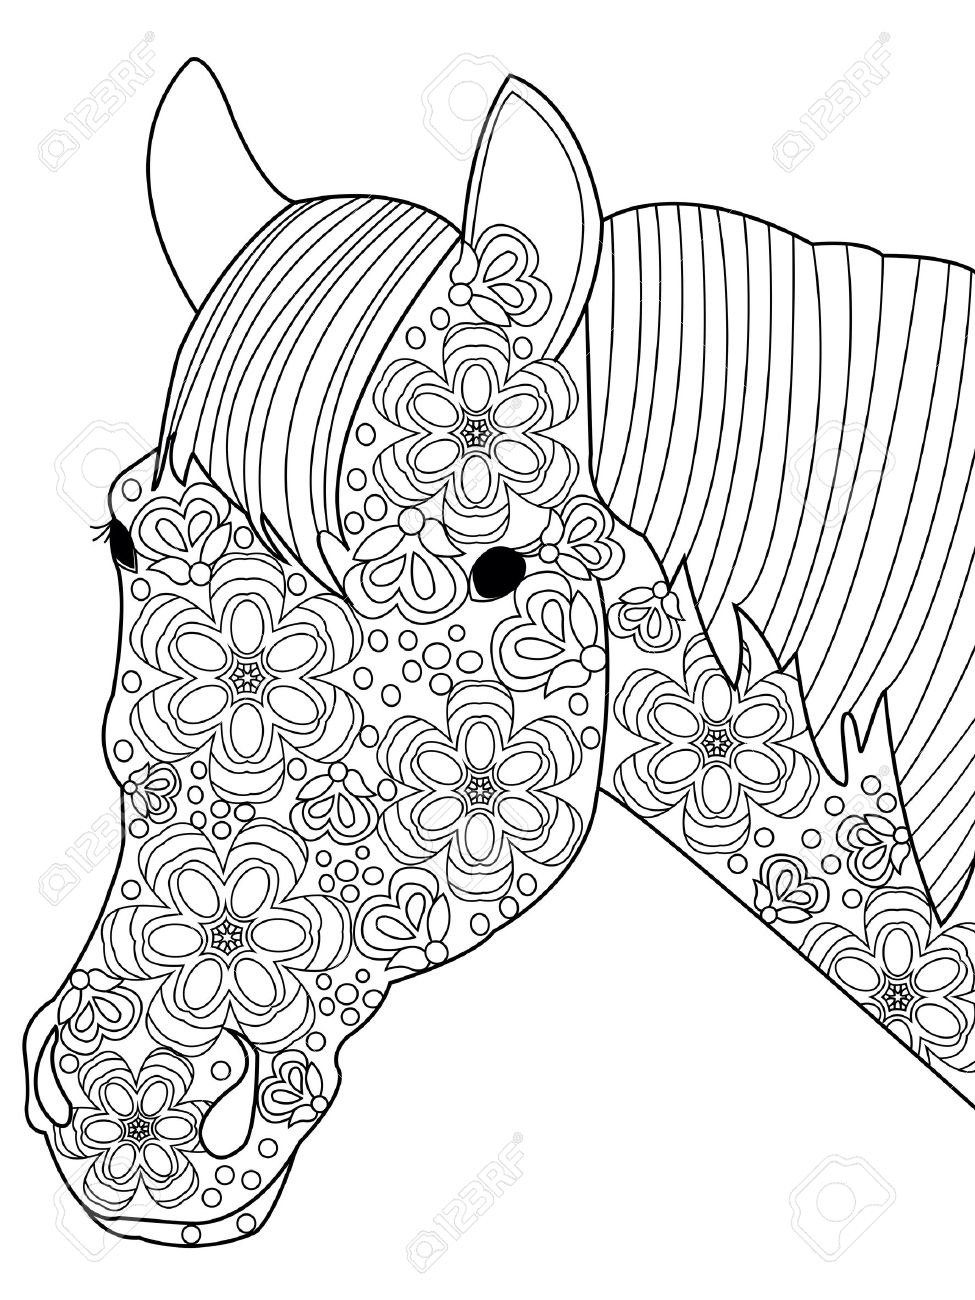 Head Horse Coloring Book For Adults Vector Illustration. Anti-stress ...